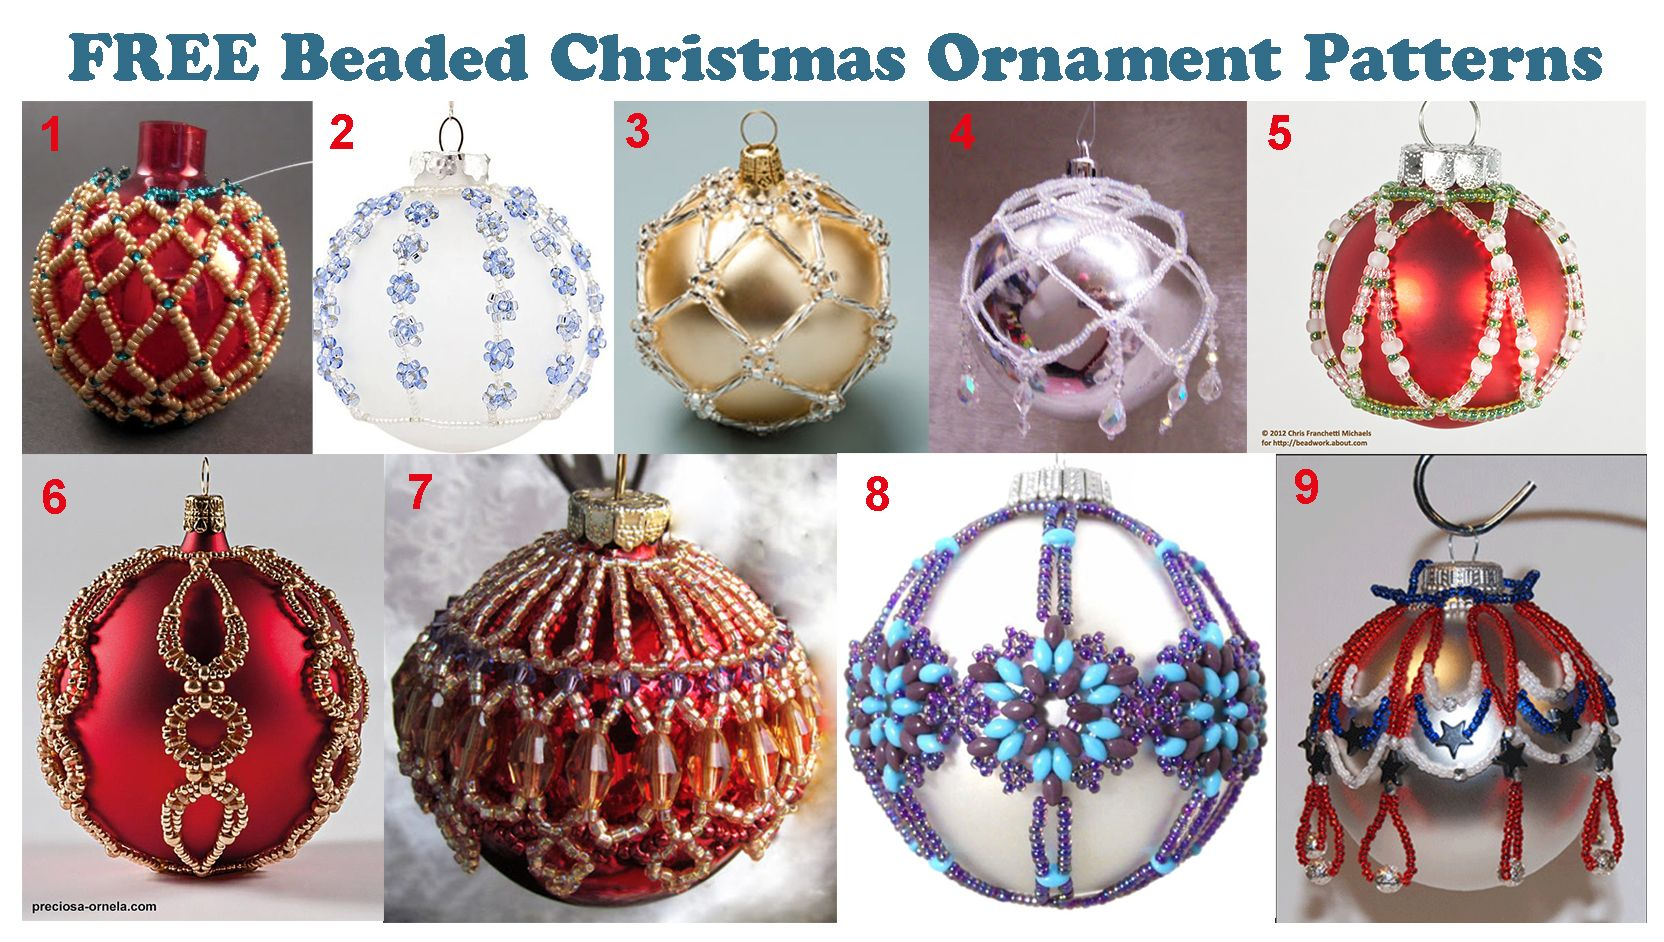 Pin By Charlene Cash On Free Bead Patterns Beaded Christmas Ornaments Beaded Christmas Decorations Christmas Bead